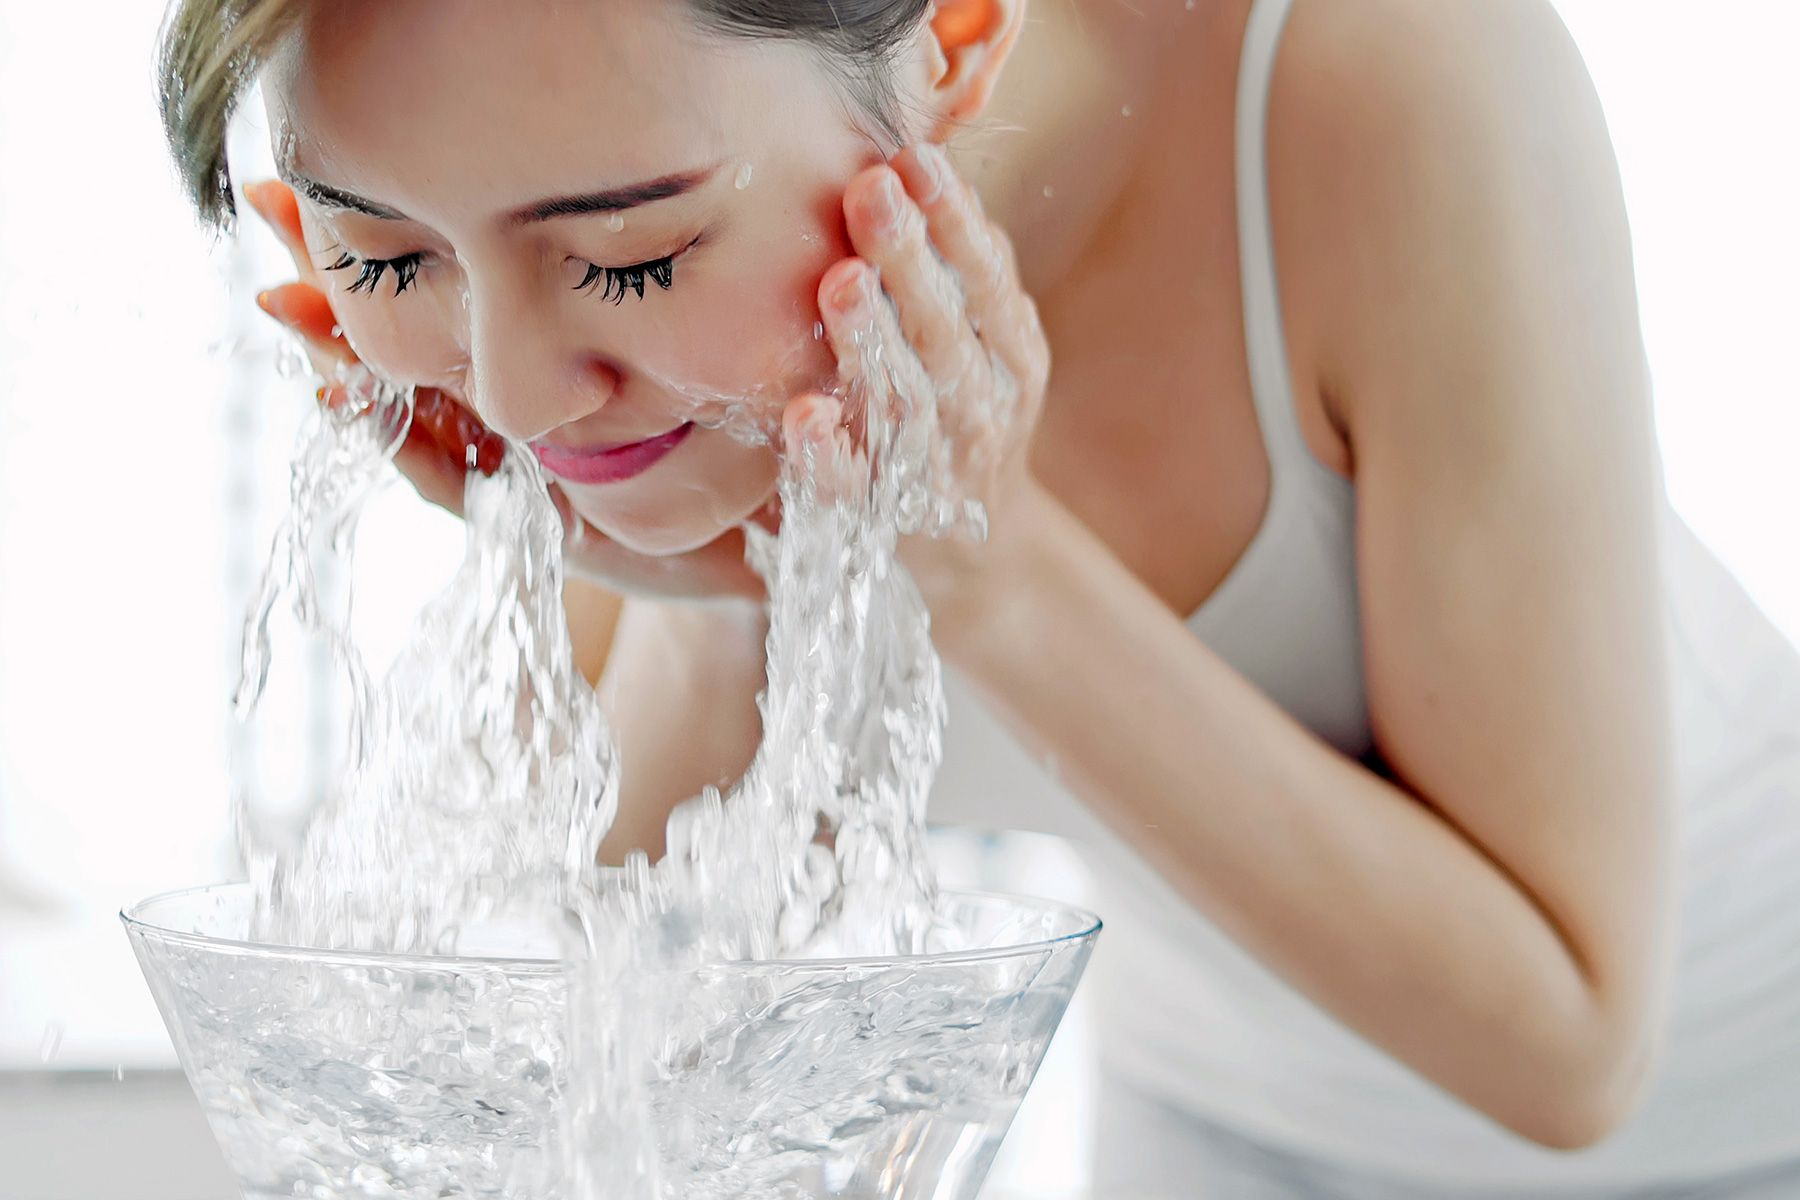 Considerable factors for obtaining best skin care products